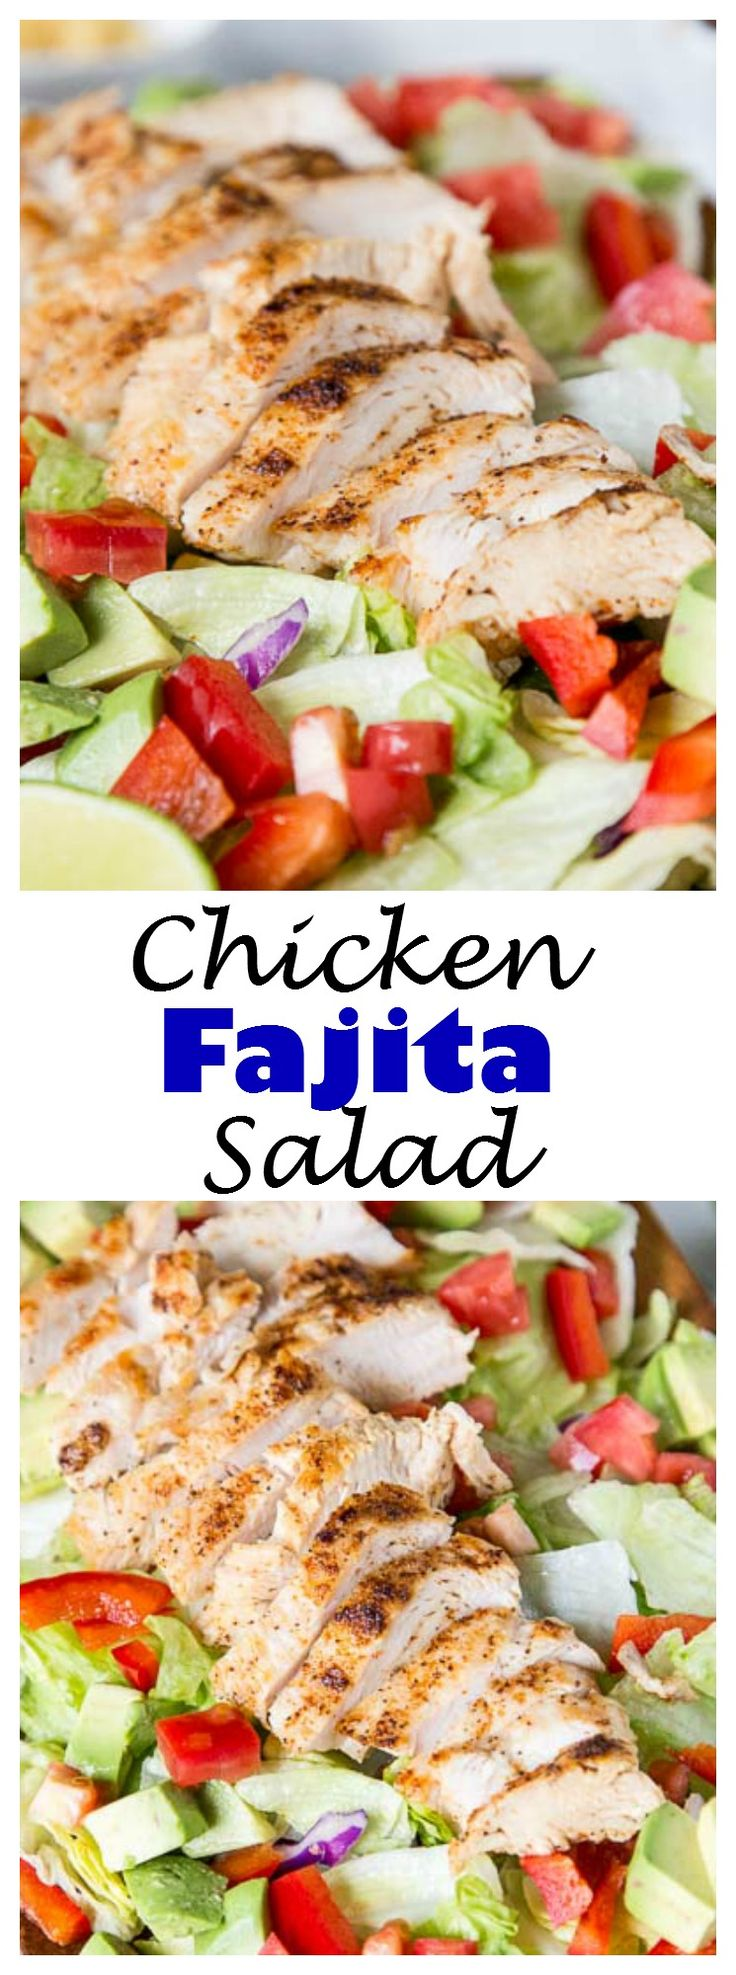 Chicken Fajita Salad – a hearty salad topped with grilled chicken, peppers, onion, avocados, and a salsa vinaigrette dressing. Definitely not your average salad!